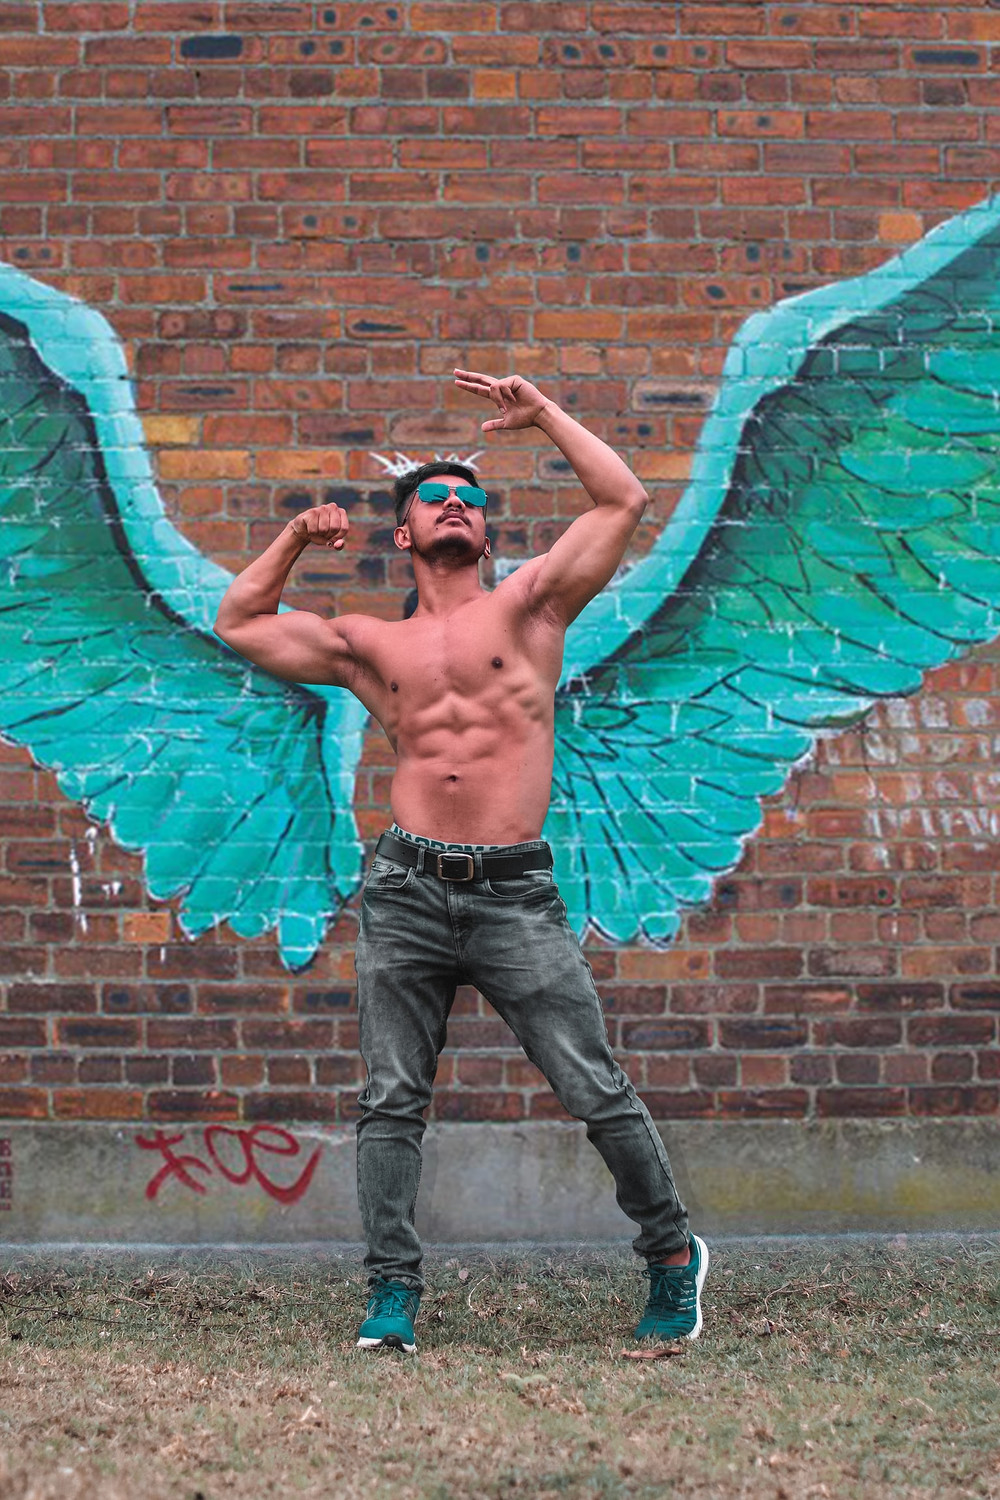 Muscular Topless Hispanic Man In Jeans, Sunglasses, And Teal Tennis Shoes Poses Heroically With Arms Raised In The Air In Front Of A Brick Wall With Huge Teal Angel Wings Painted In Mural Behind Him In A Relationship With A Pick-Up Artist Relationship Break-Up Self Improvement Lifestyle Advice Blog Fabsolutely Co